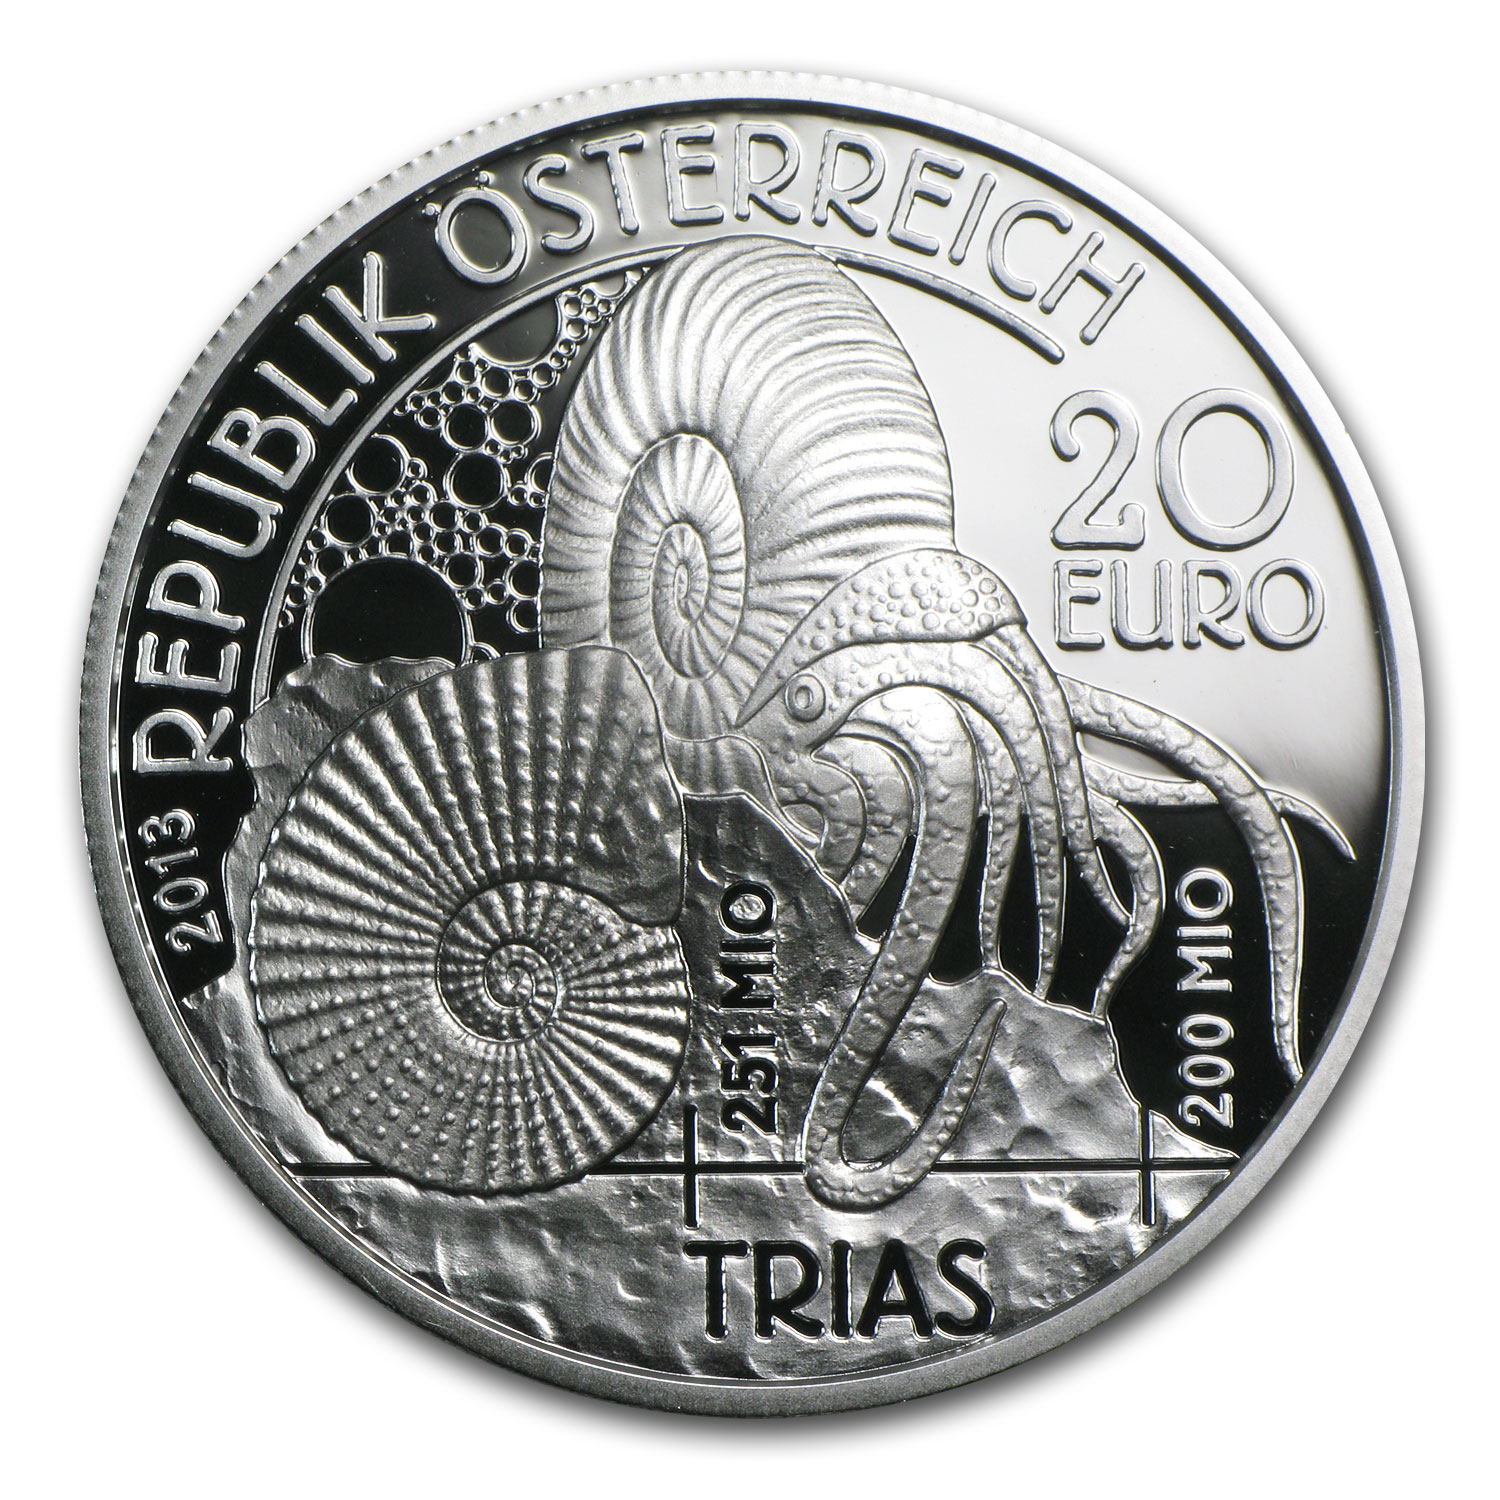 2013 Austria Silver €20 Life in the Water Proof (Triassic)